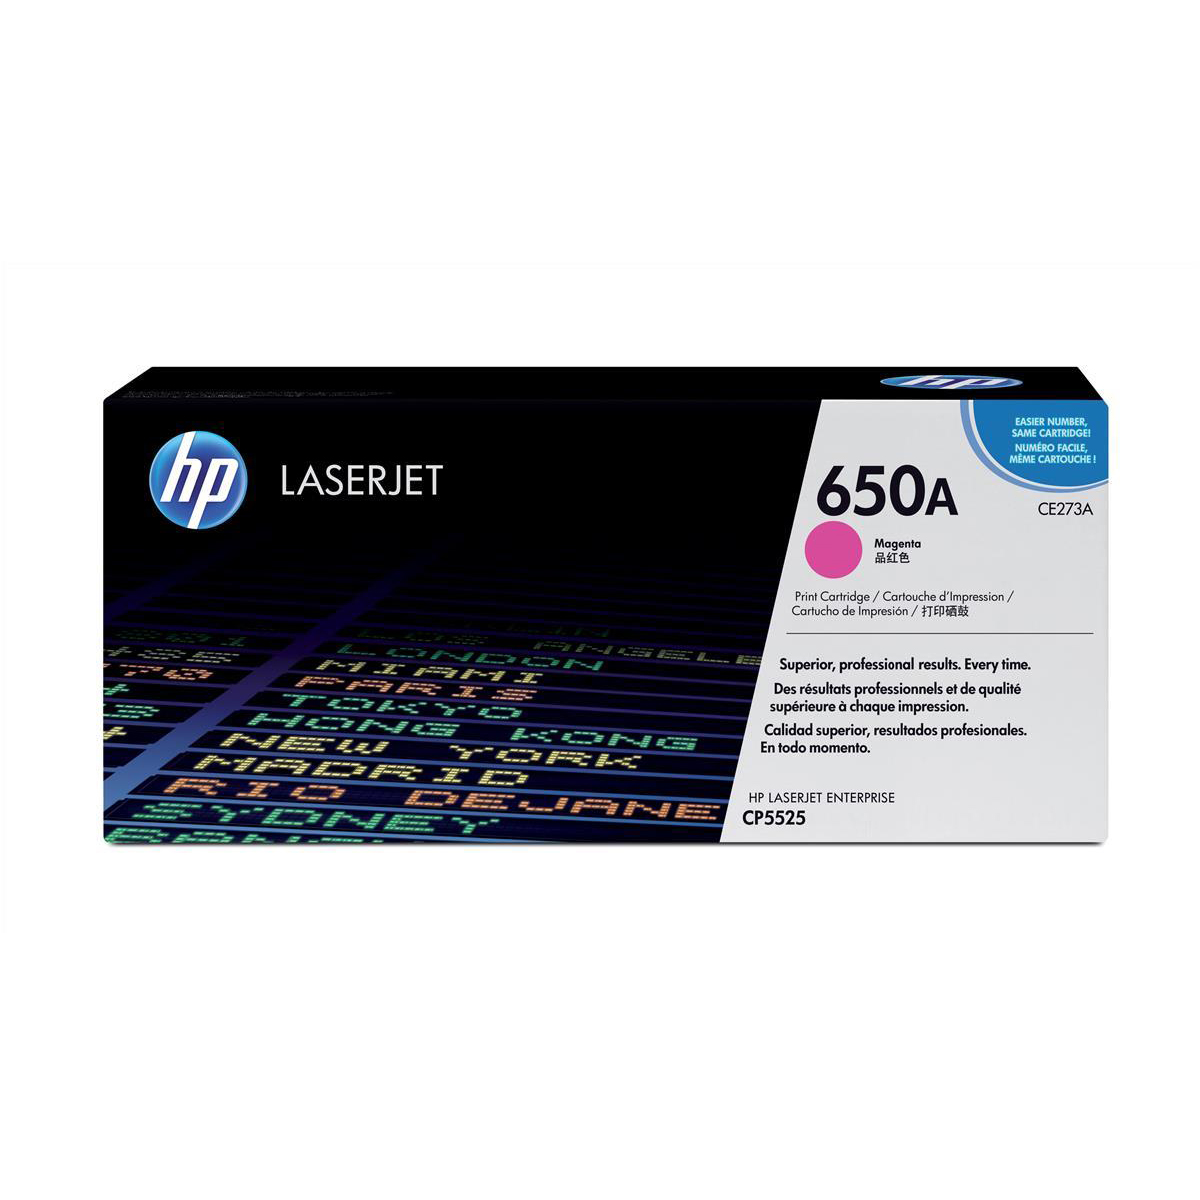 Hewlett Packard [HP] No. 650A Laser Toner Cartridge Page Life 15000pp Magenta Ref CE273A